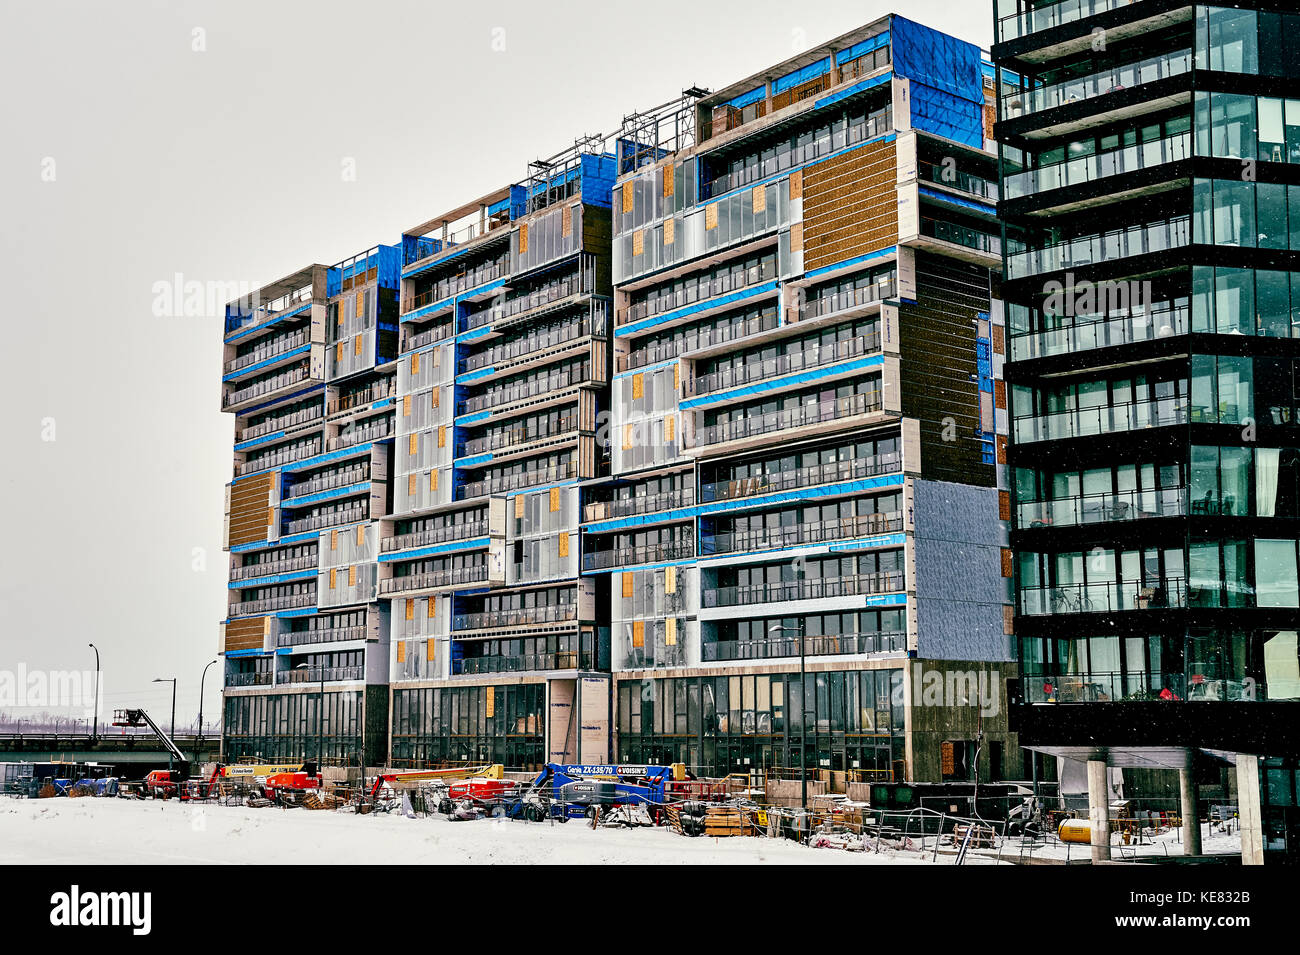 Condominium Buildings Being Built In Panam Village; Toronto, Ontario, Canada - Stock Image